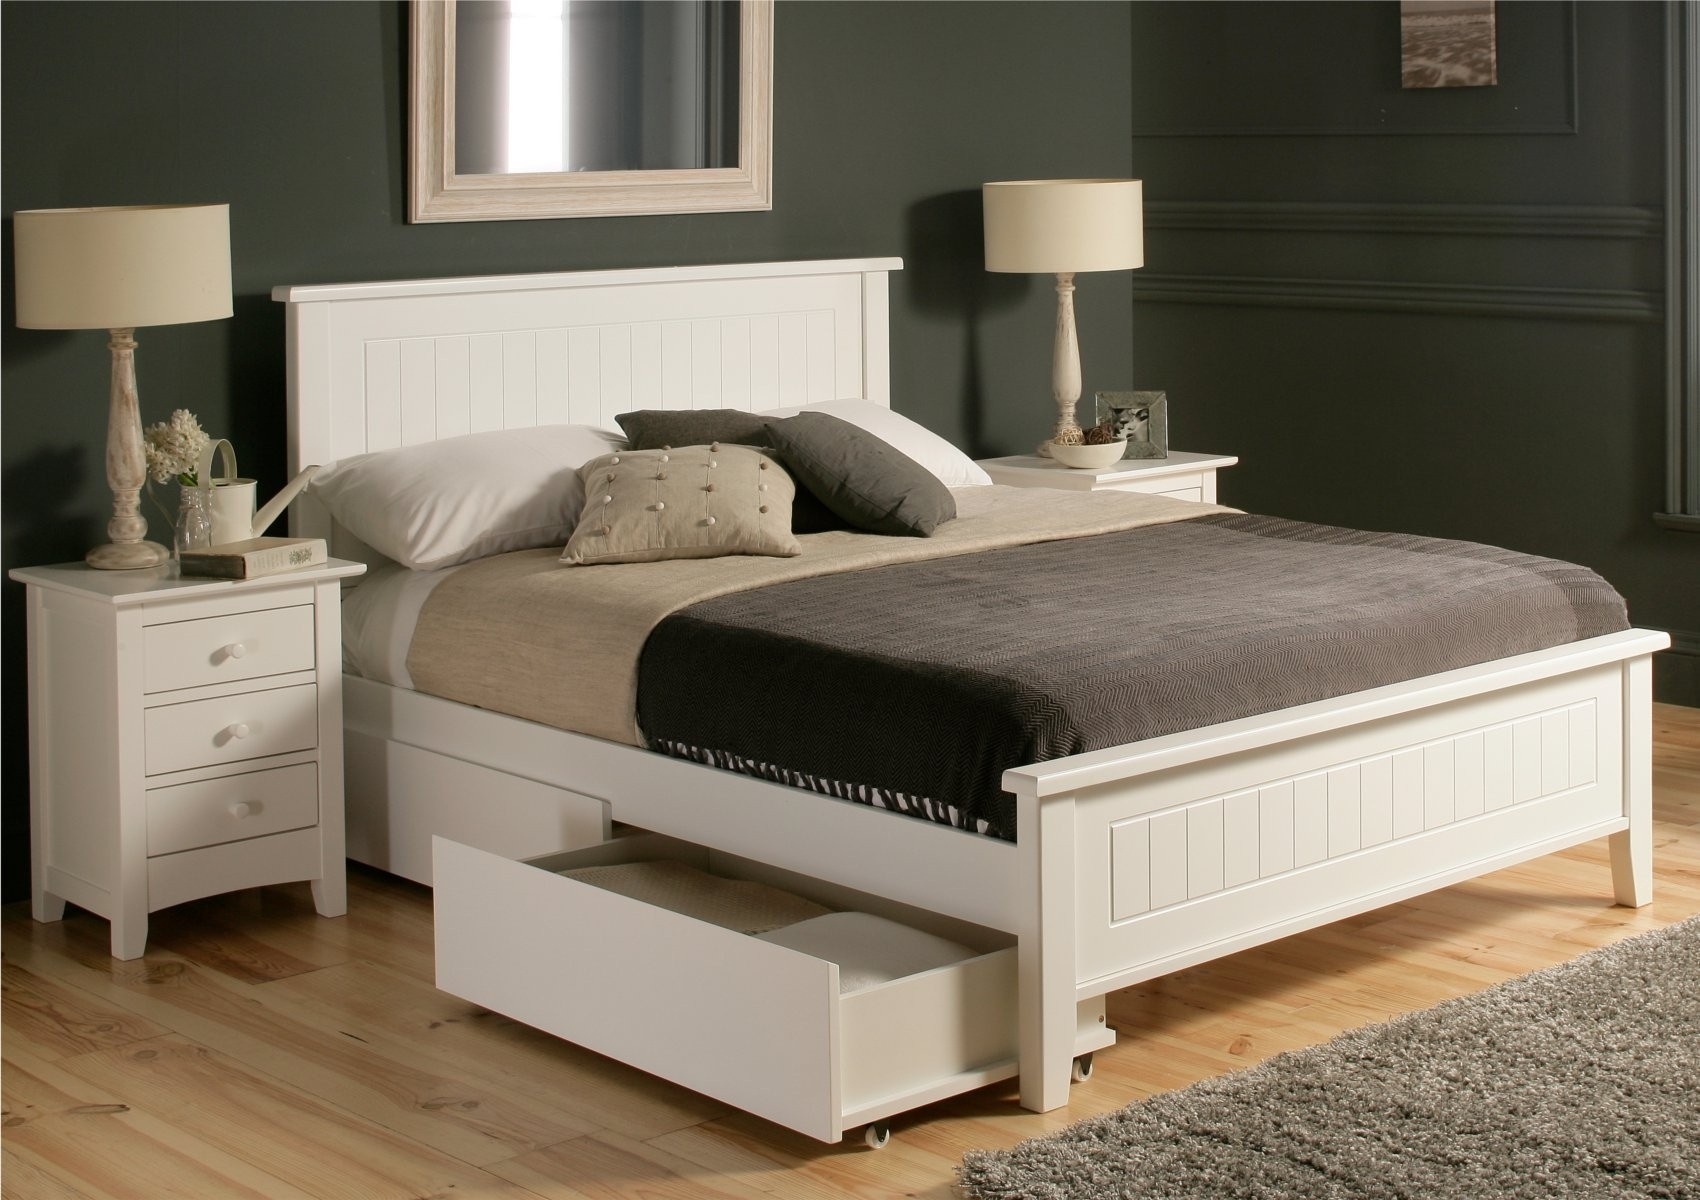 White Wooden Queen Size Bed Frame